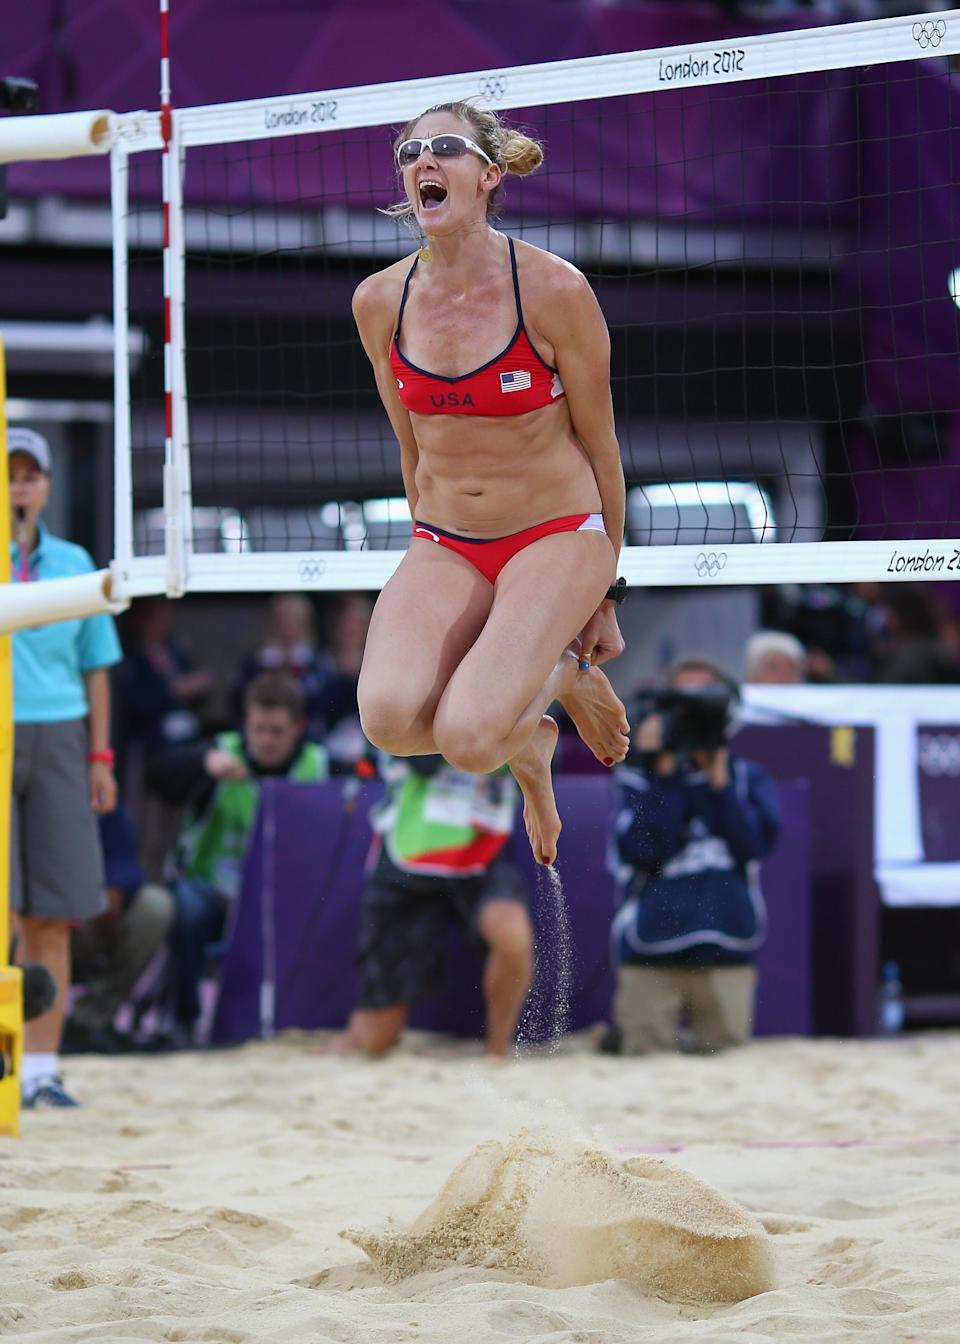 LONDON, ENGLAND - AUGUST 07: Kerri Walsh Jennings of the United States celebrates after winning match point during the Women's Beach Volleyball Semi Final match between United States and China on Day 11 of the London 2012 Olympic Games at Horse Guards Parade August 7, 2012 in London, England. (Photo by Ryan Pierse/Getty Images)